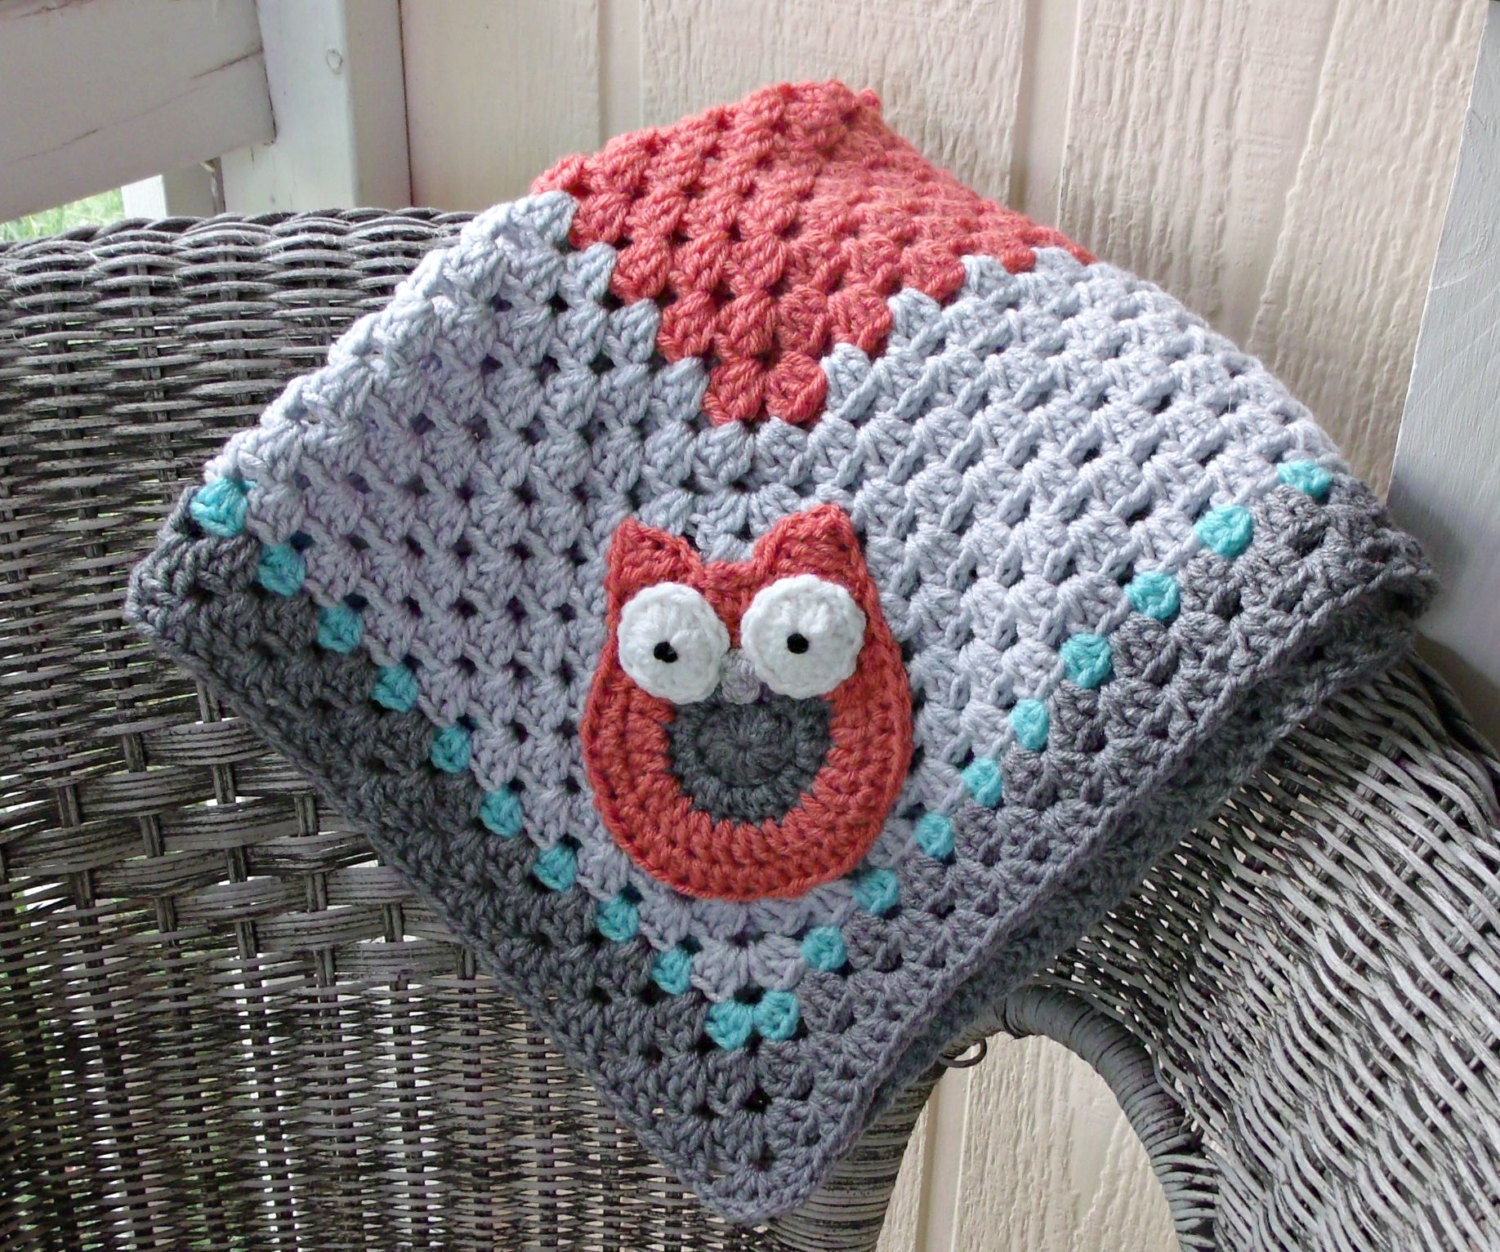 Crochet Owl Blanket : Kitchen & Dining